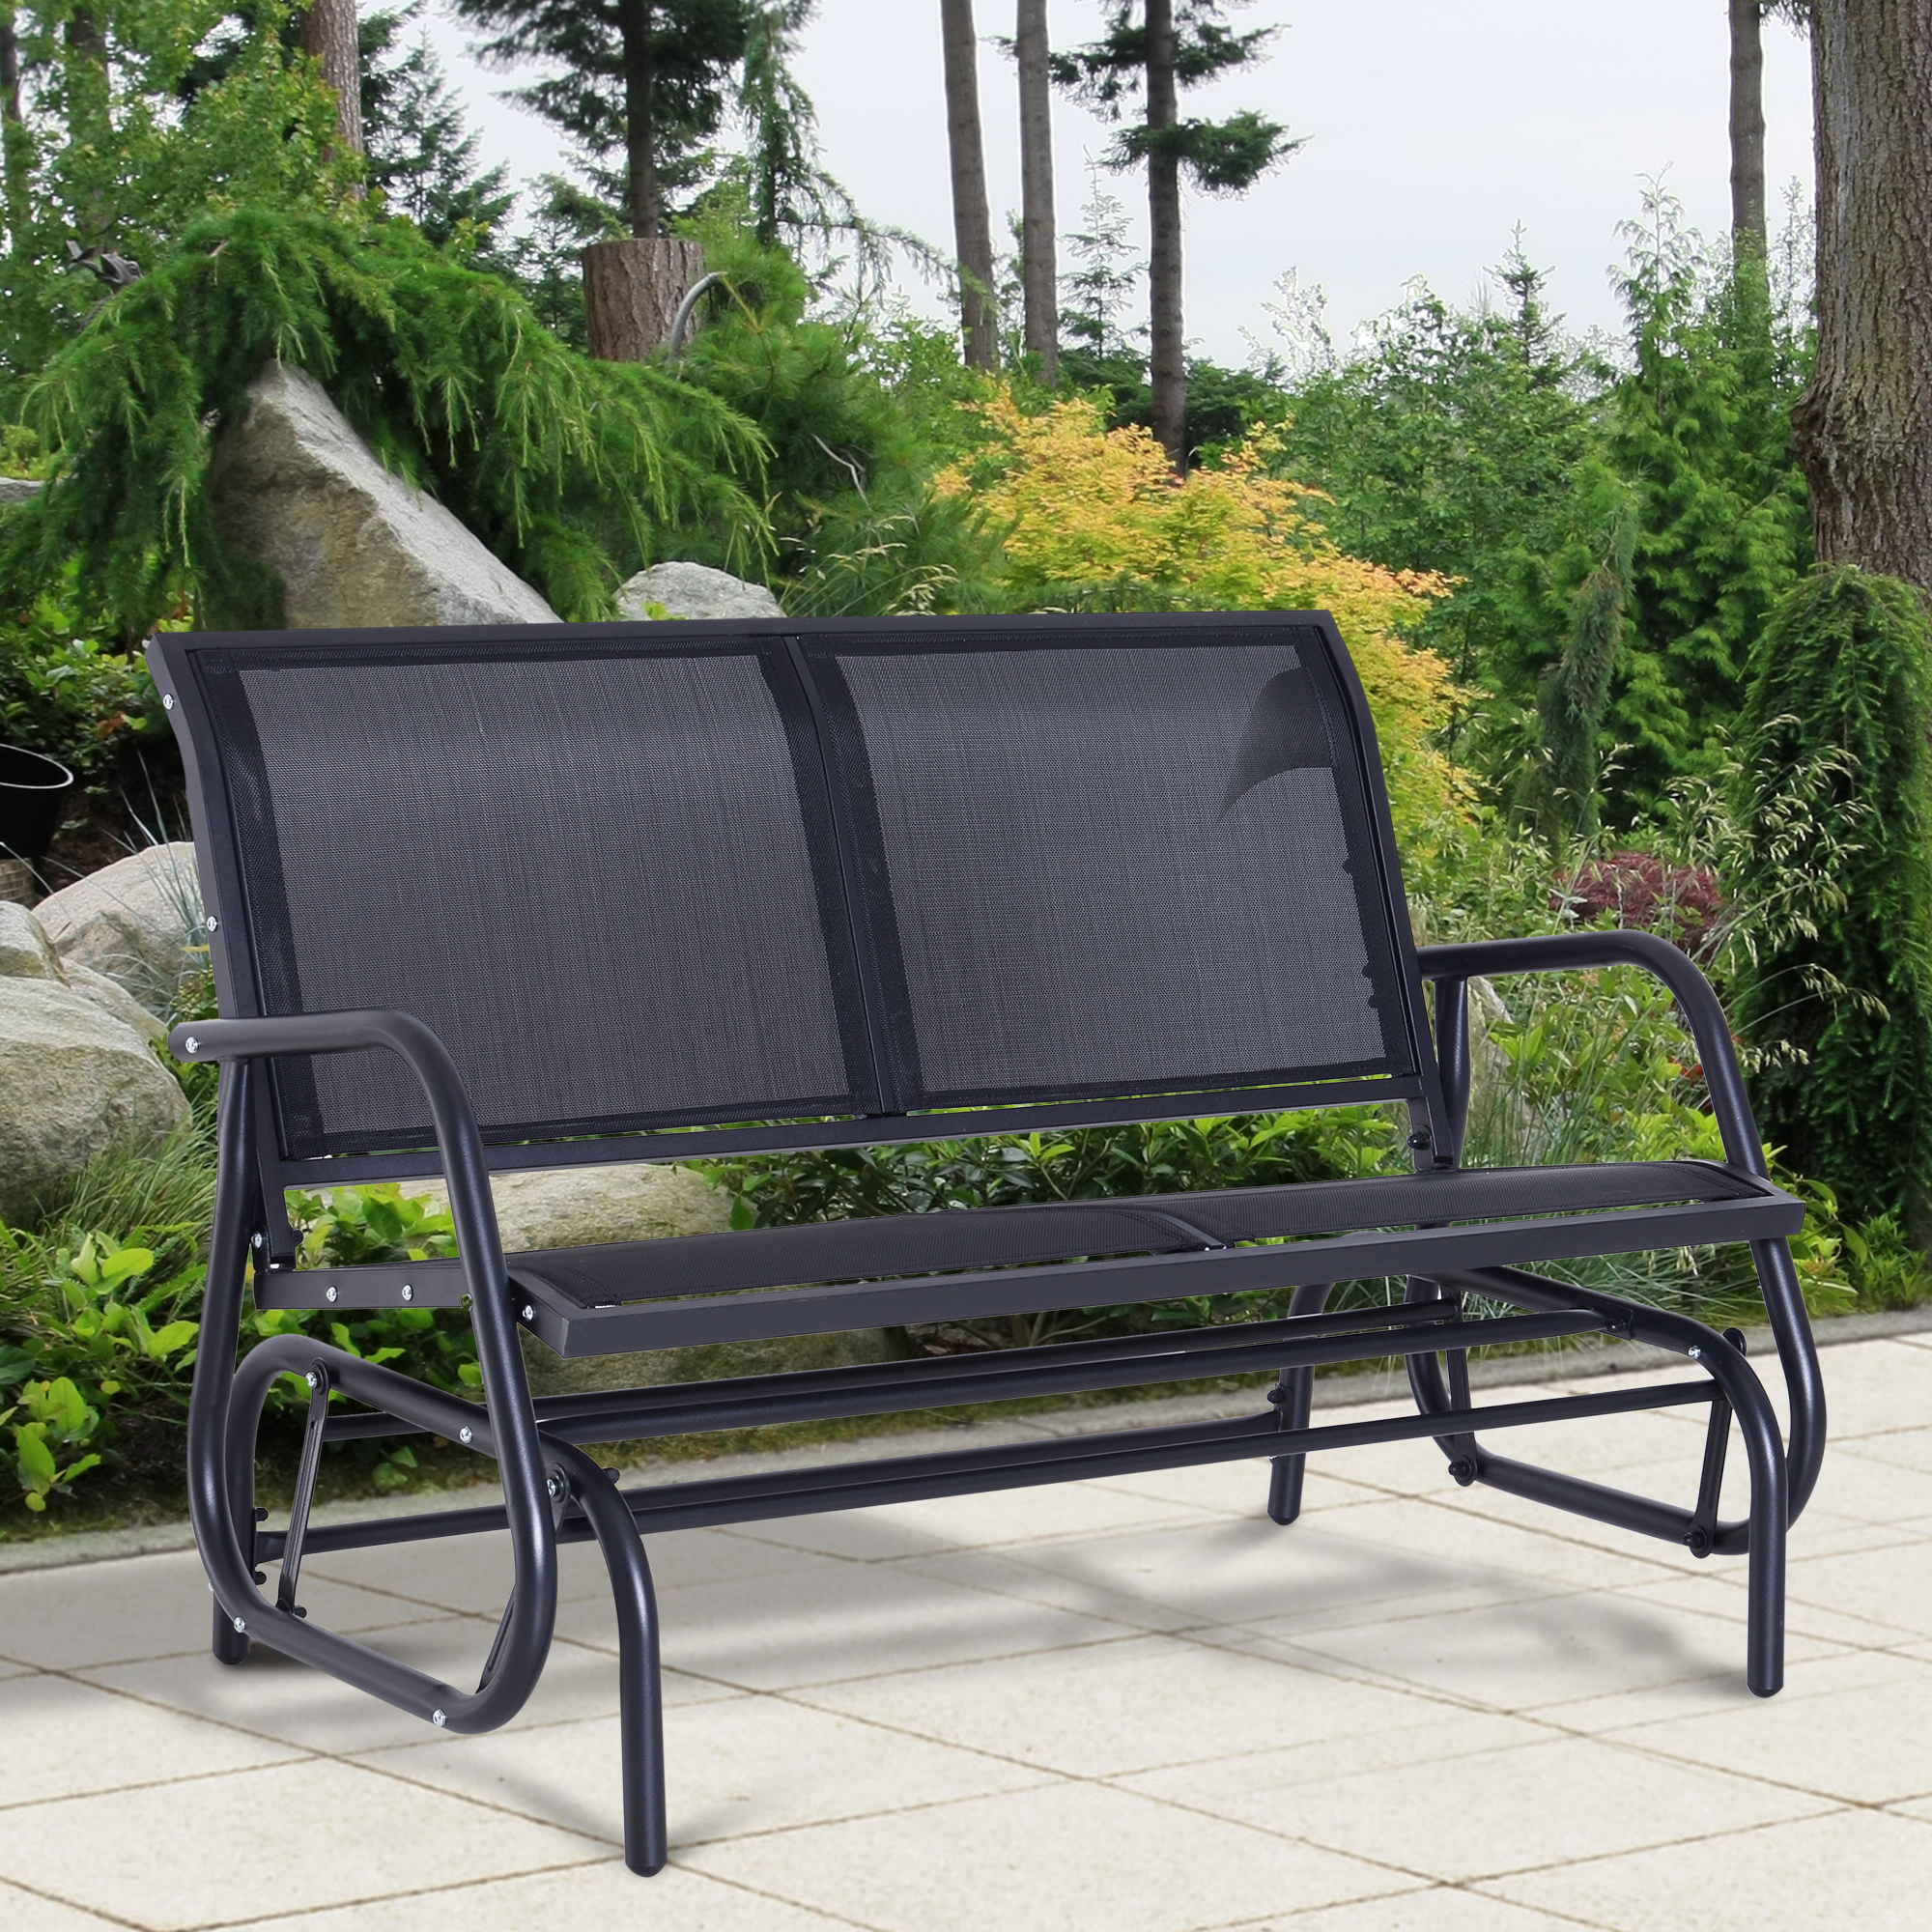 Details About Outsunny Patio Garden Glider Bench 2 Person Double Swing Chair Rocker Deck Black Throughout Sling Double Glider Benches (View 18 of 25)